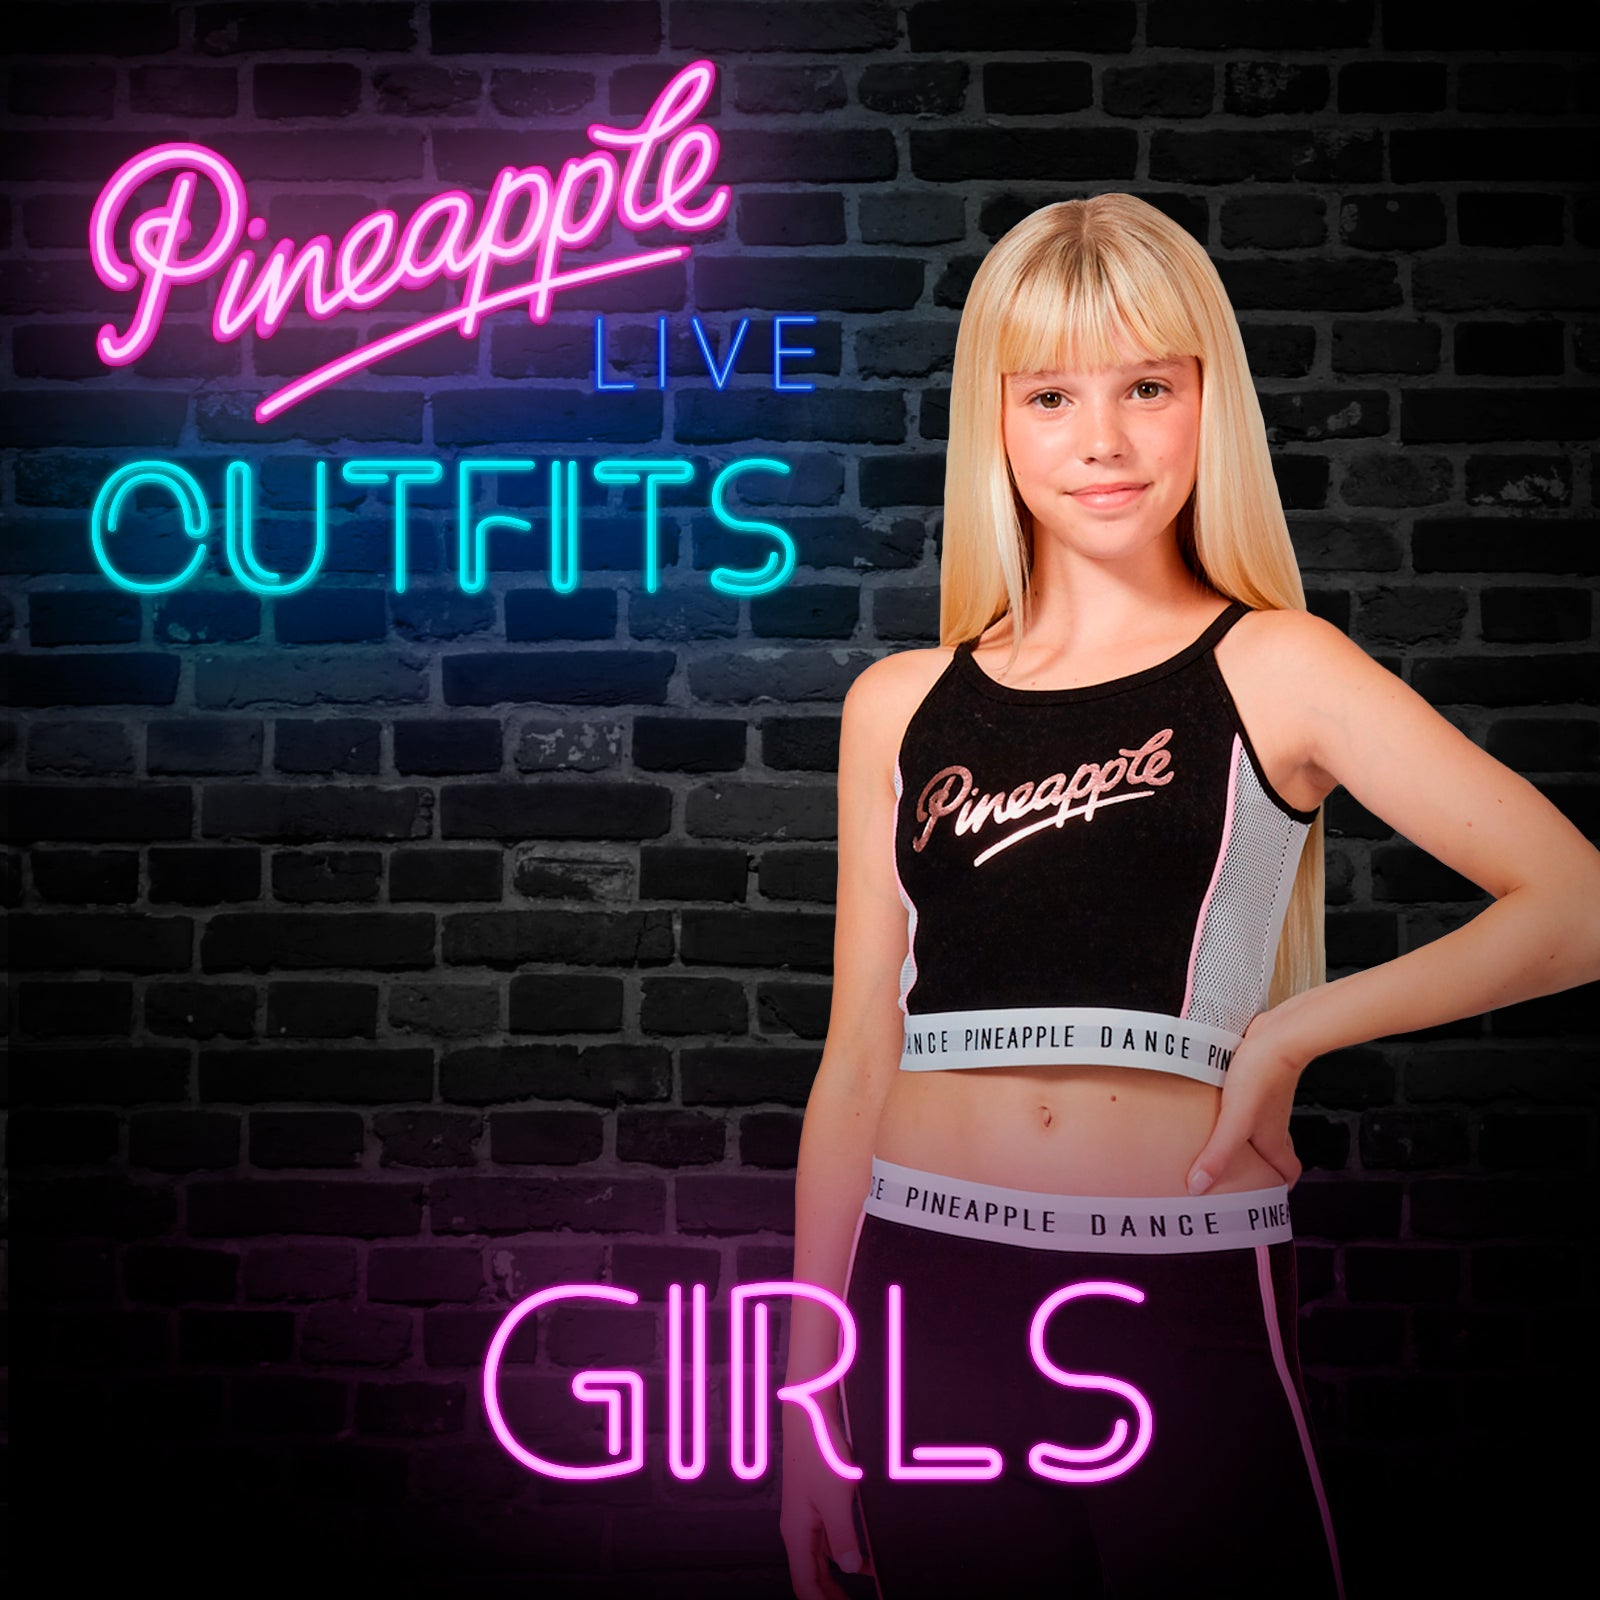 Pineapple LIVE dance class outfits for girls